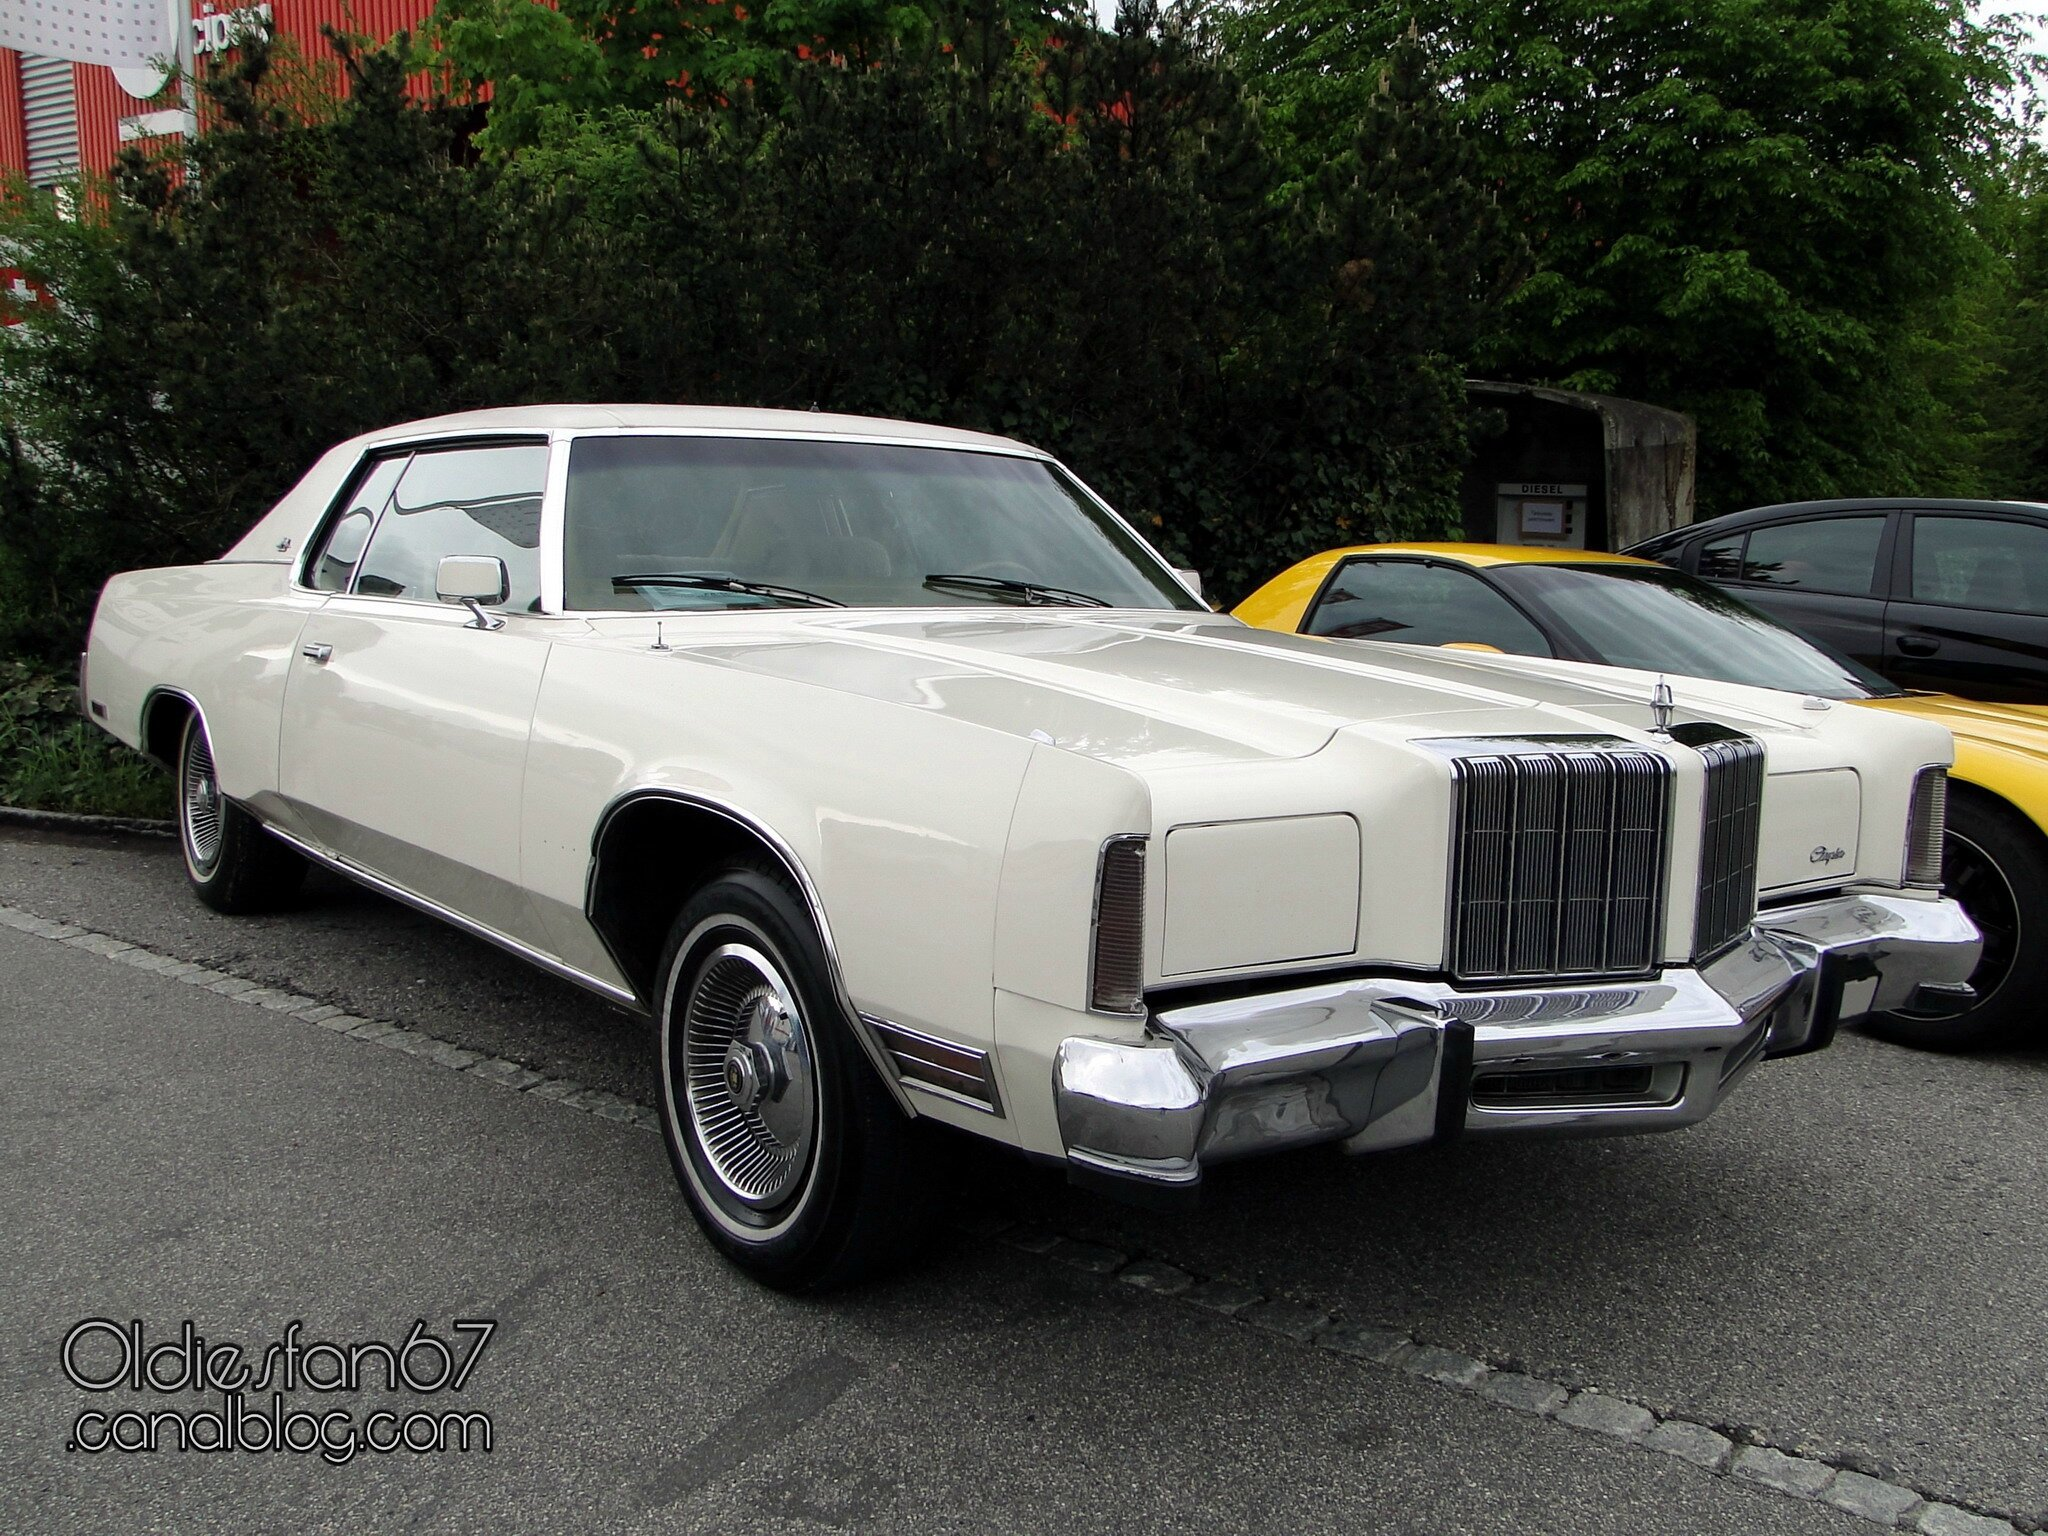 chrysler new yorker brougham hardtop coupe 1978 oldiesfan67 mon blog auto. Black Bedroom Furniture Sets. Home Design Ideas